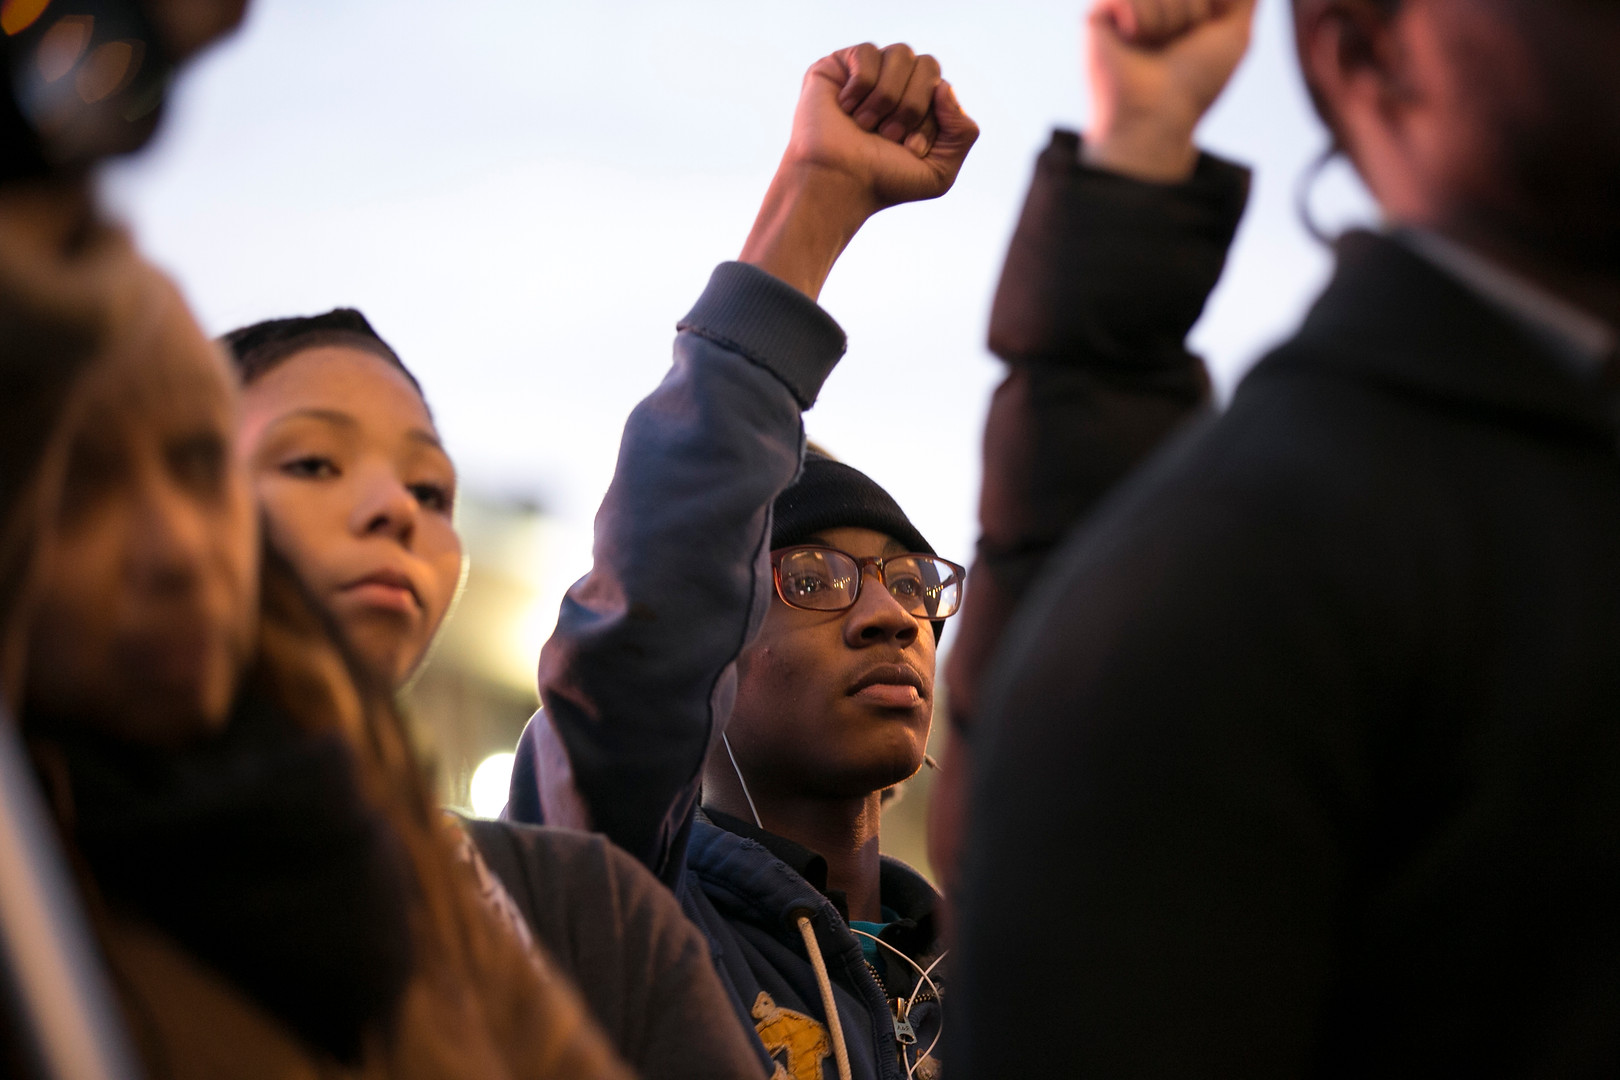 A young man raises a fist during a protest of the killing of Michael Brown in Philadelphia